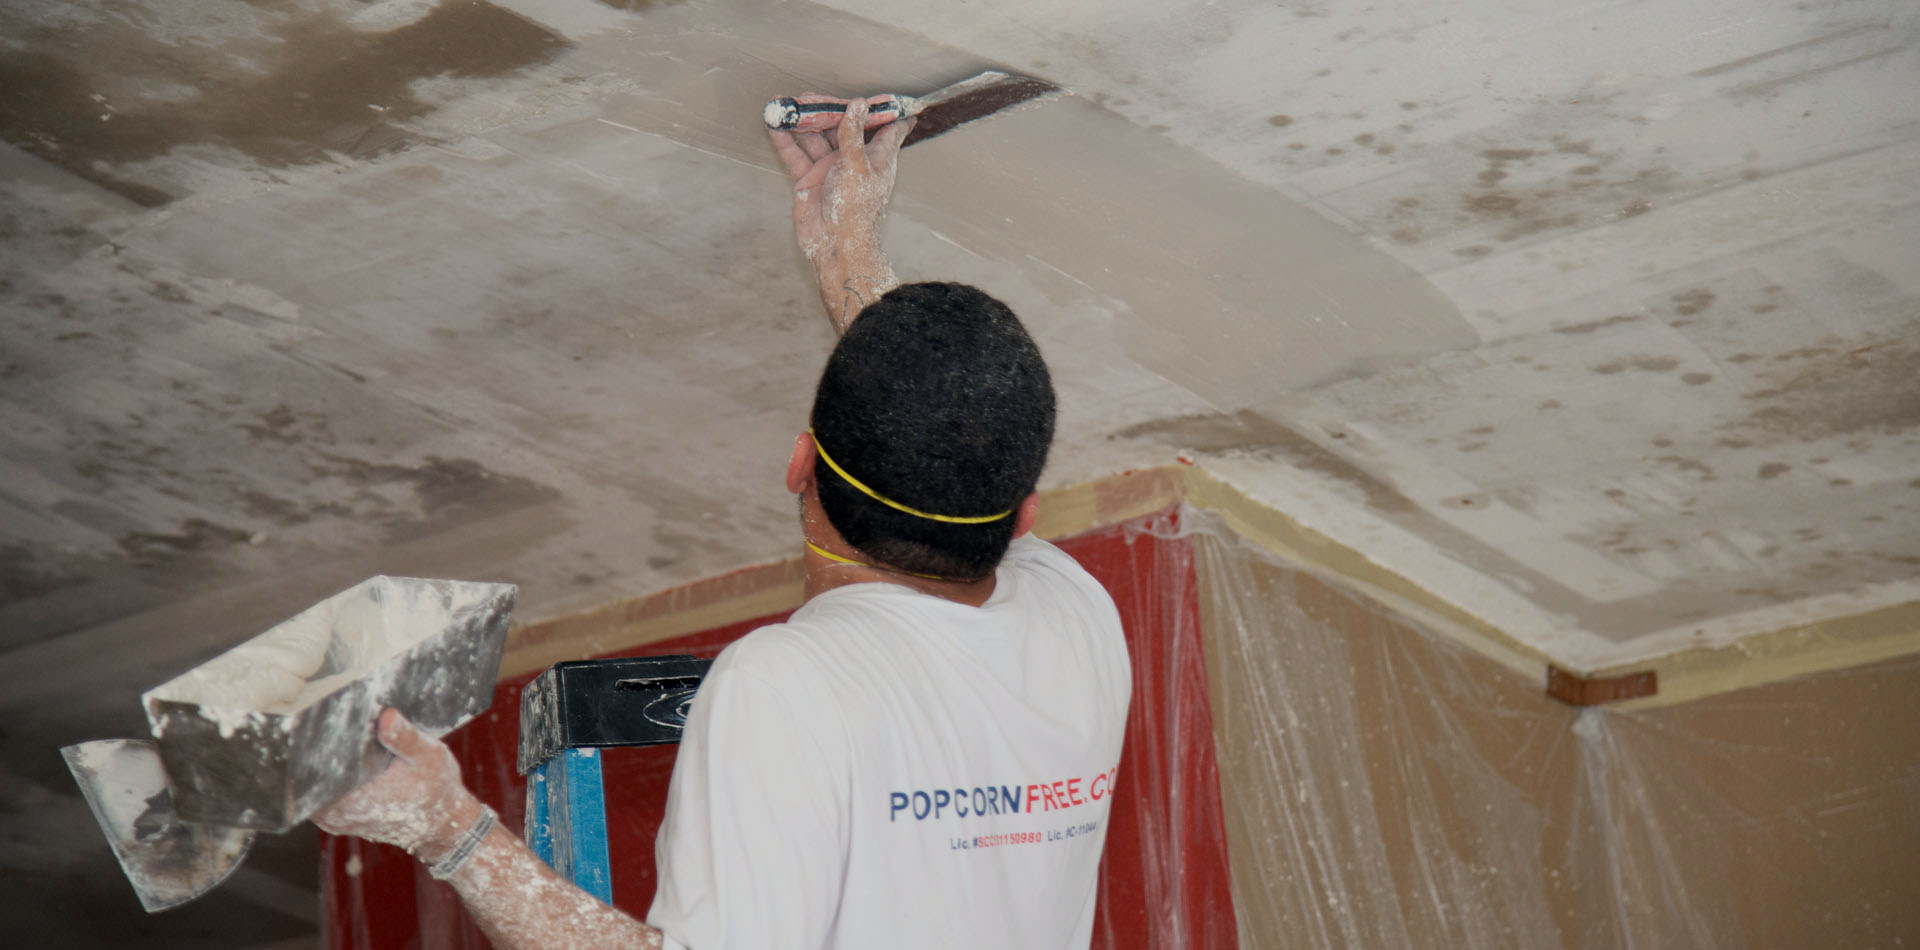 Applying Ceiling Compount for Repair